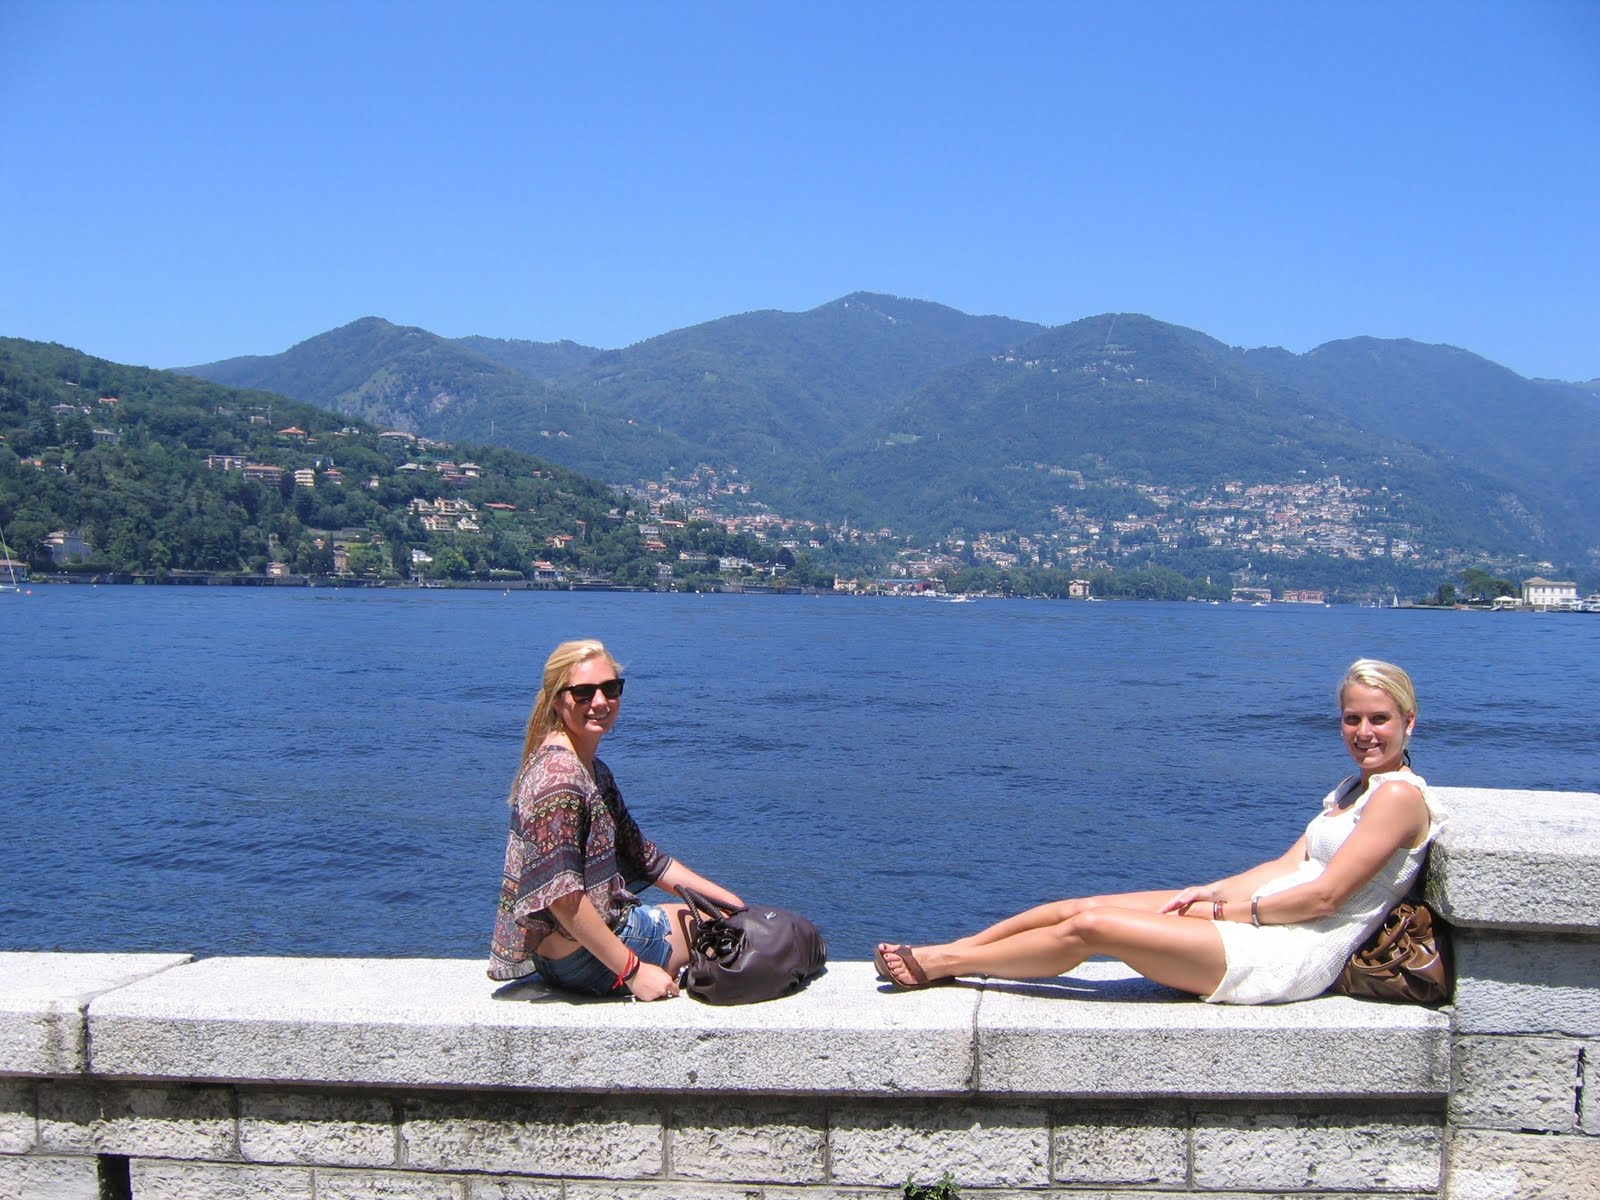 lake como single lesbian women Making friends at lake como by the girls find a way to avoid the cops after straight redheads lesbian sex couples foot fetish petite bi girls curvy bi guys.